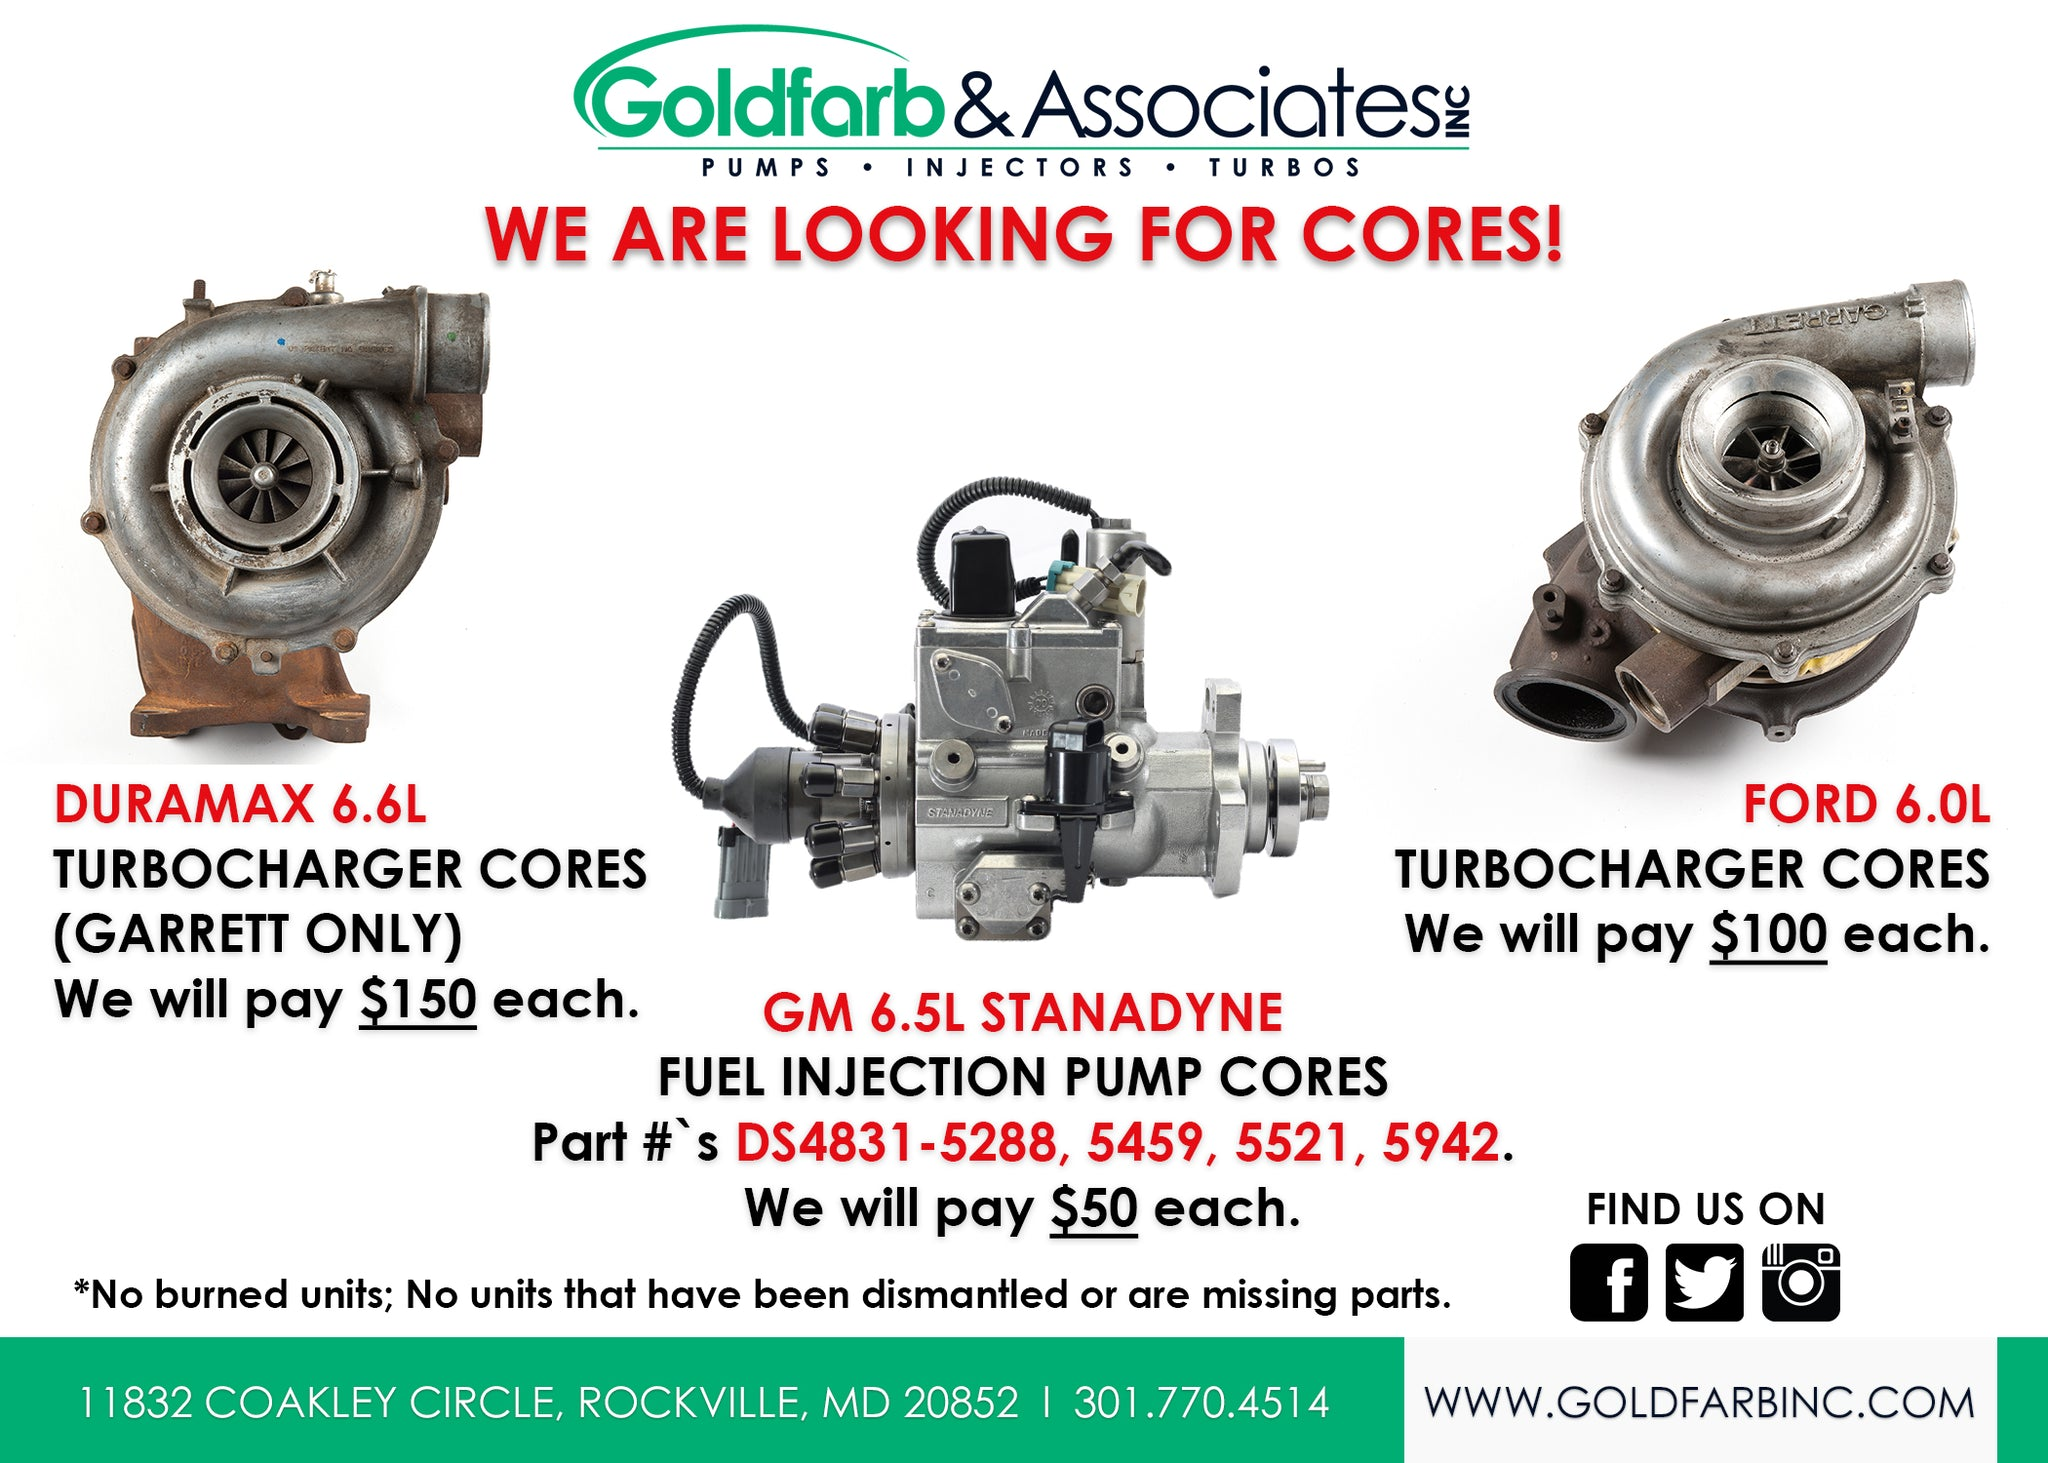 We are looking for Duramax 6.6L (Garrett) & Ford 6.0 Turbocharger cores and GM 6.5L Stanadyne Fuel injection pump cores - Part #'s DS4831-5288, 5459, 5521, 5942.